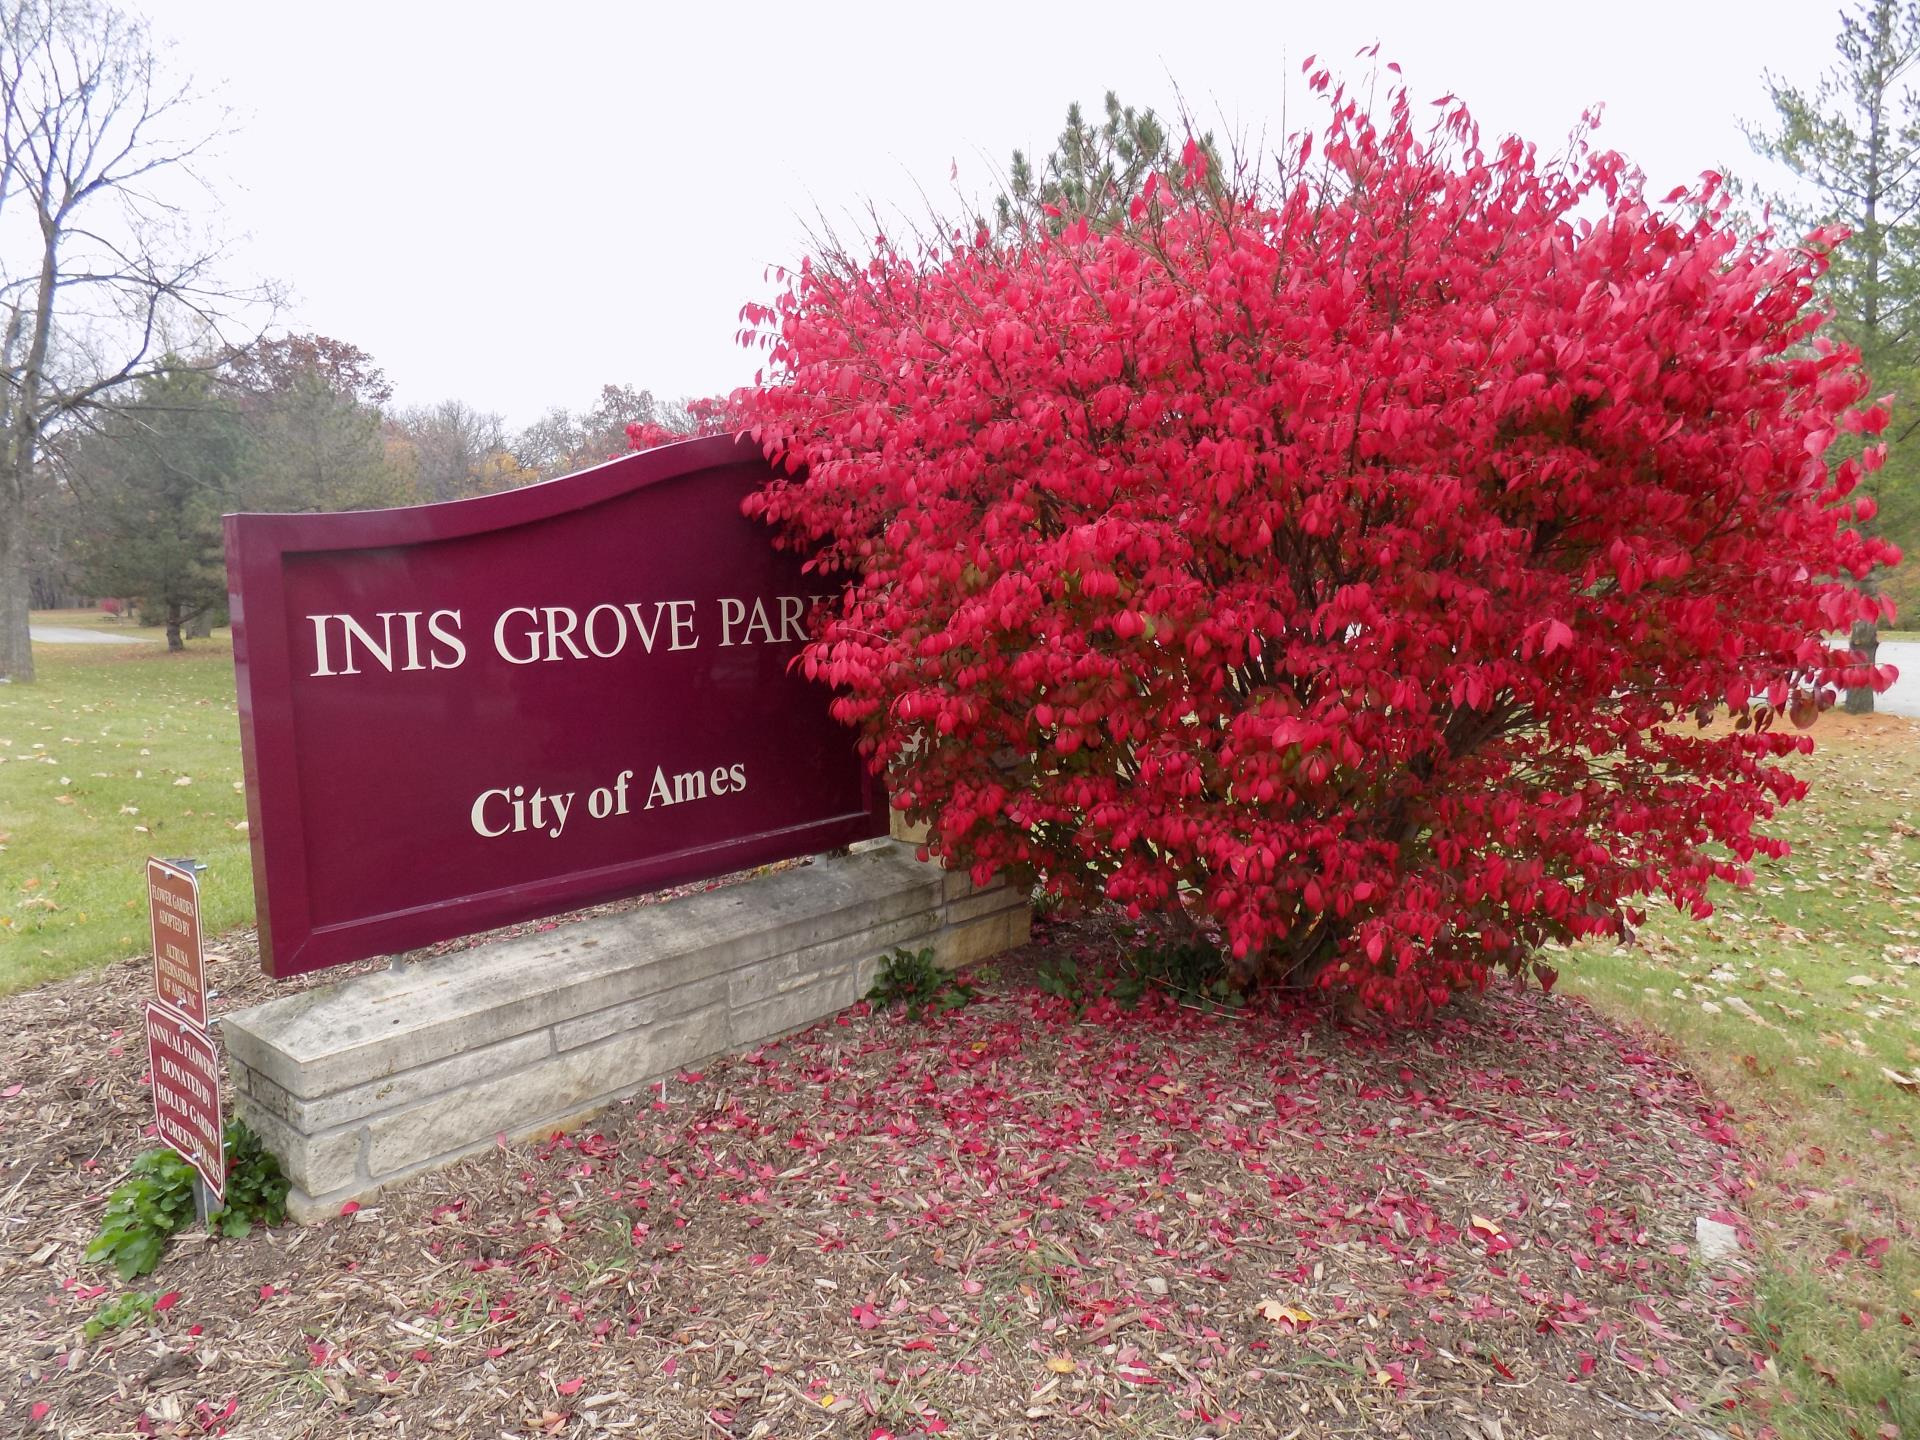 Inis Grove Park Sign